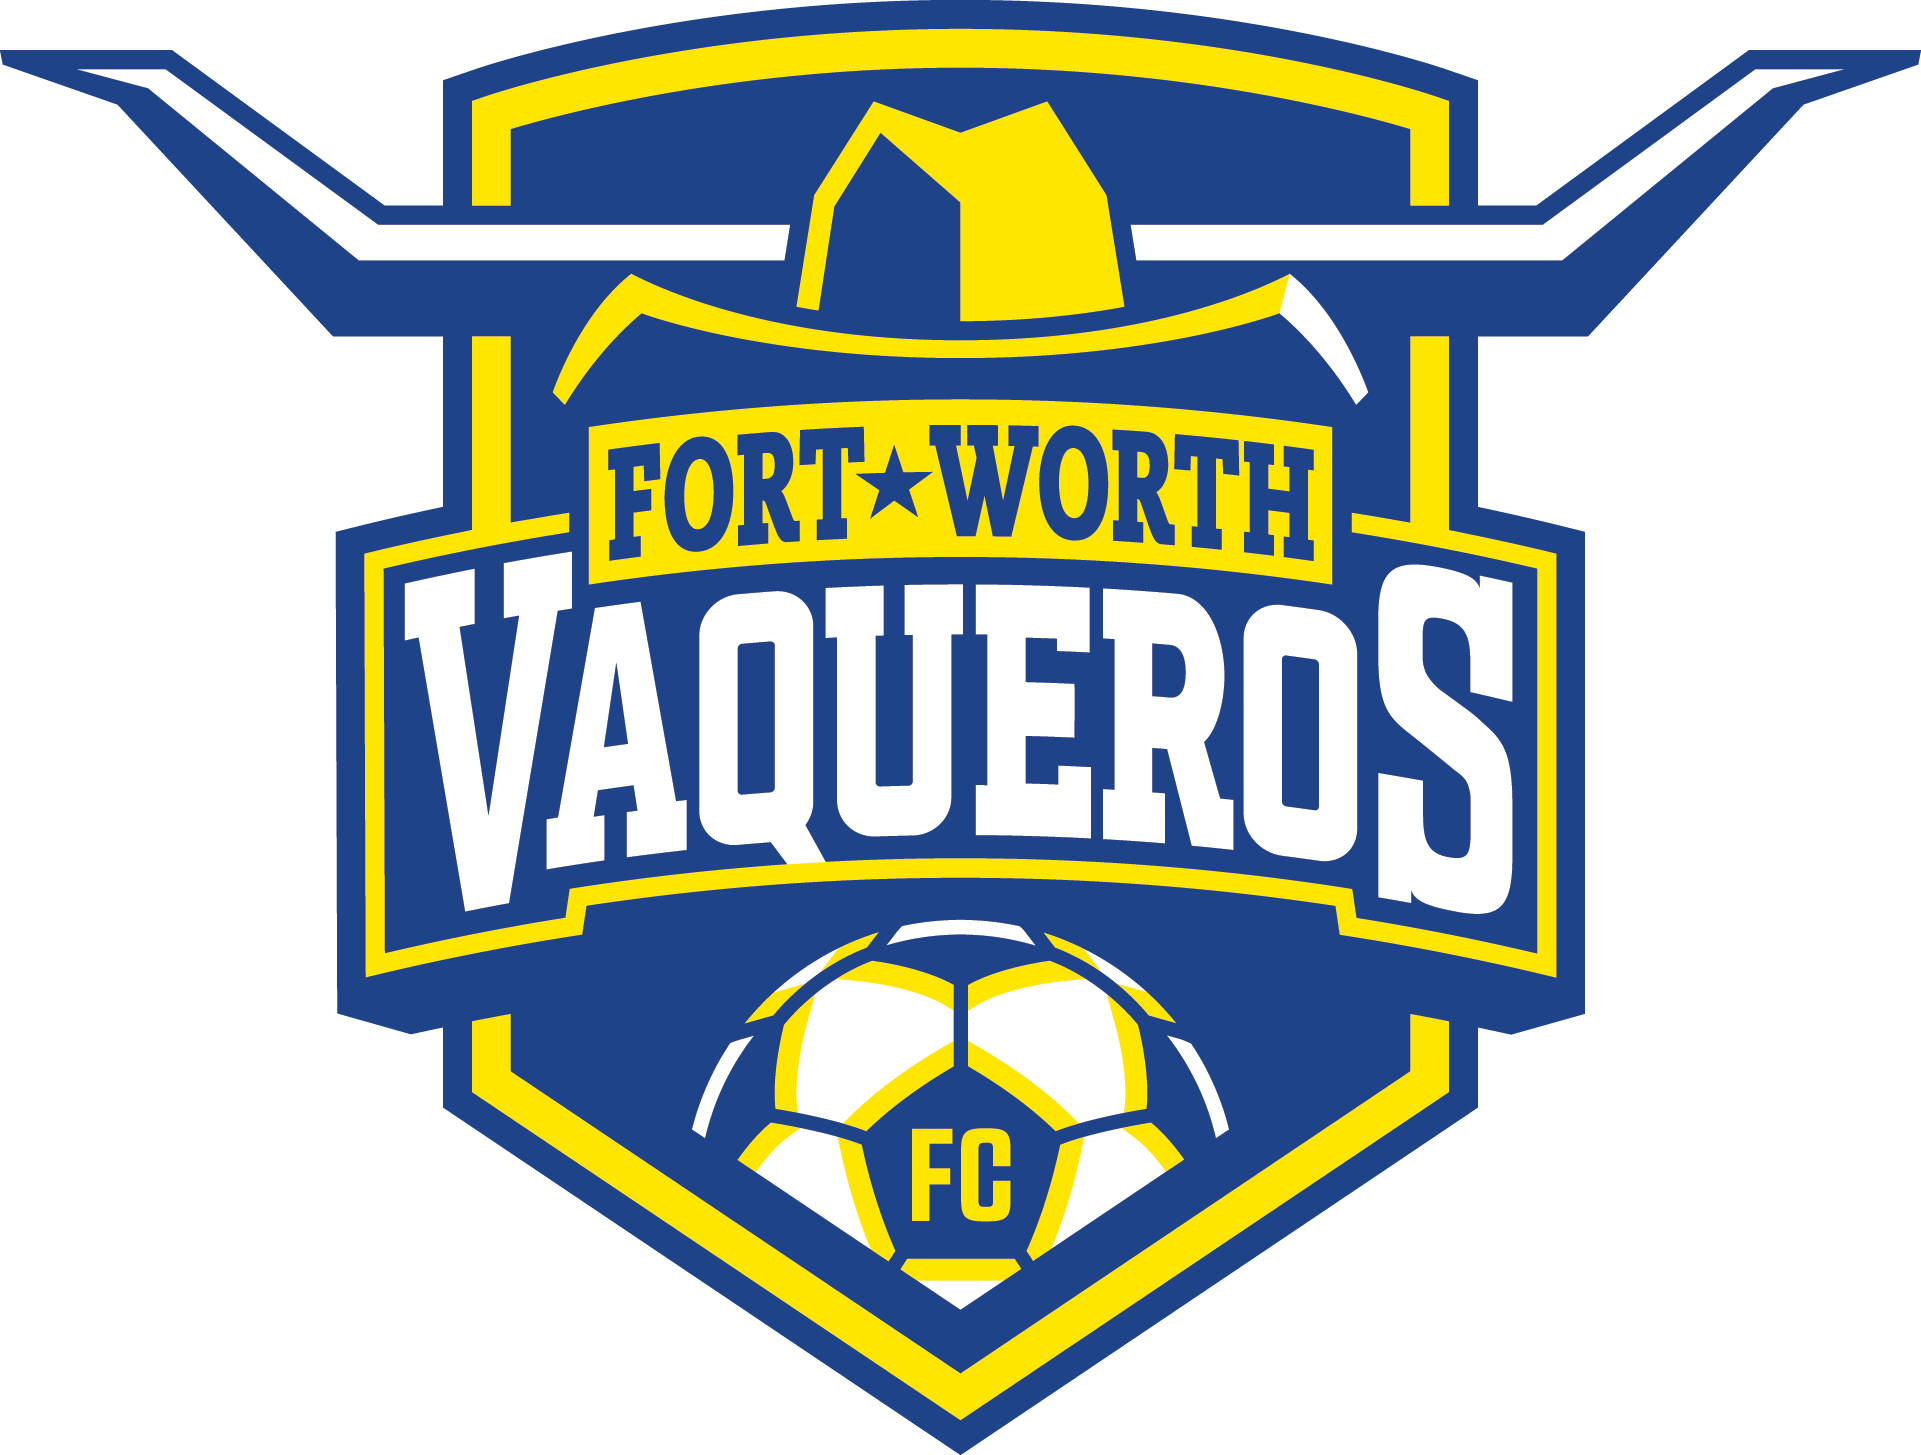 Dallas Soccer News